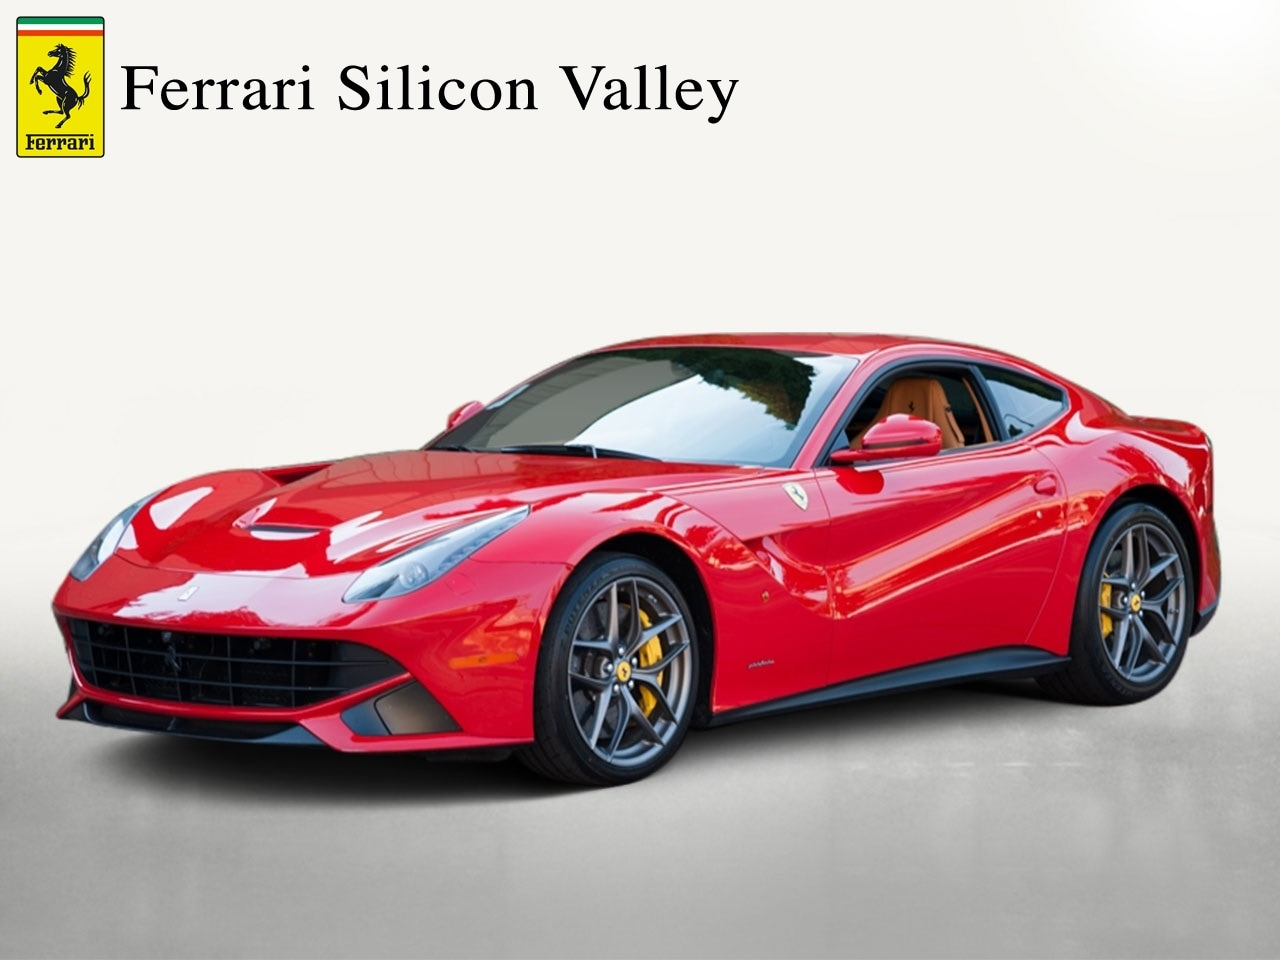 Certified Pre-Owned 2015 Ferrari F12berlinetta Coupe For Sale Beverly Hills, CA